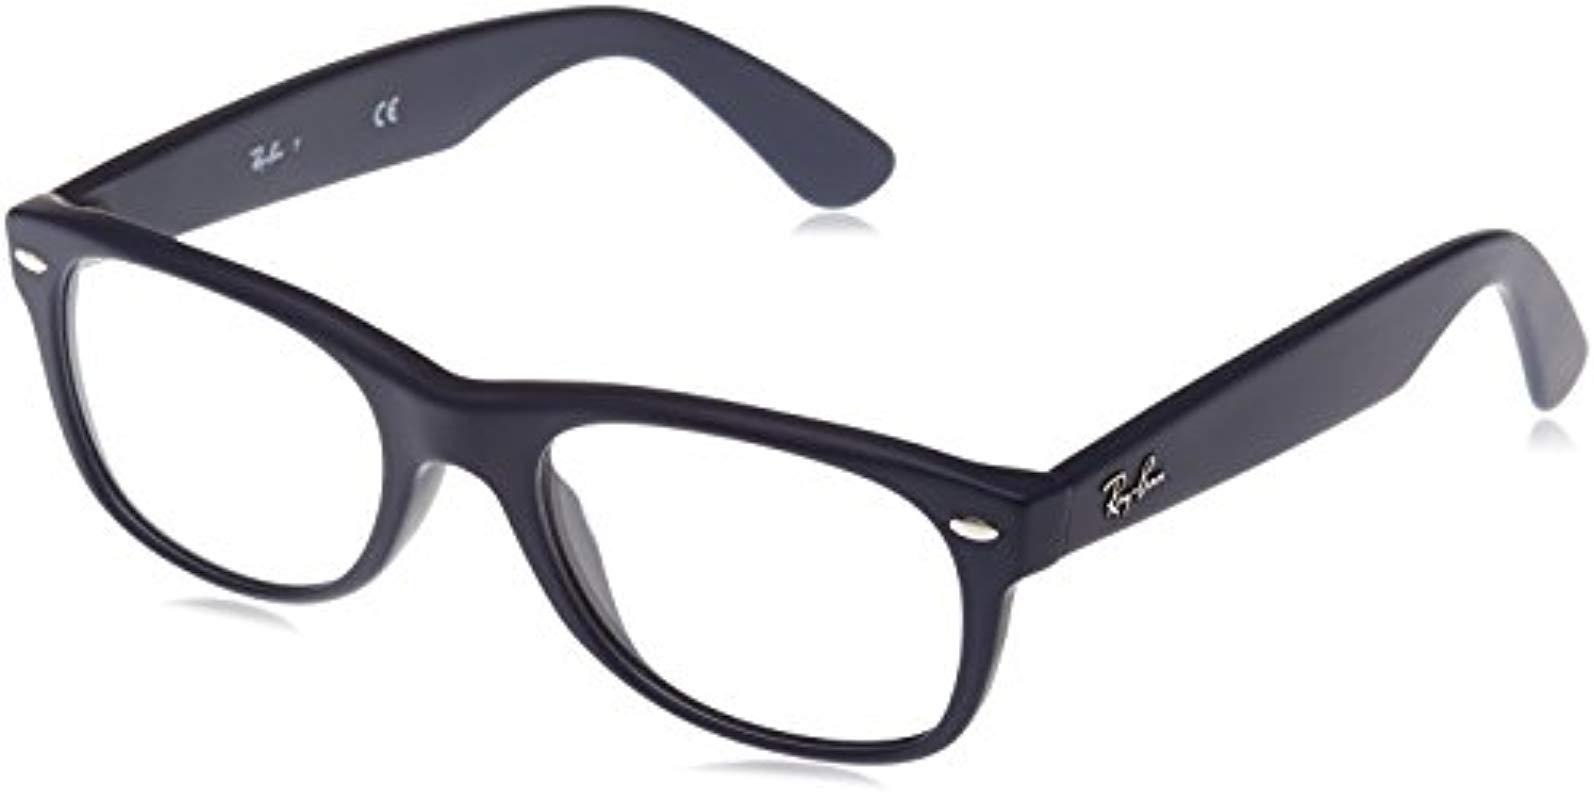 10b640fbbe Ray-Ban 0rx 6360 2861 51 Optical Frames